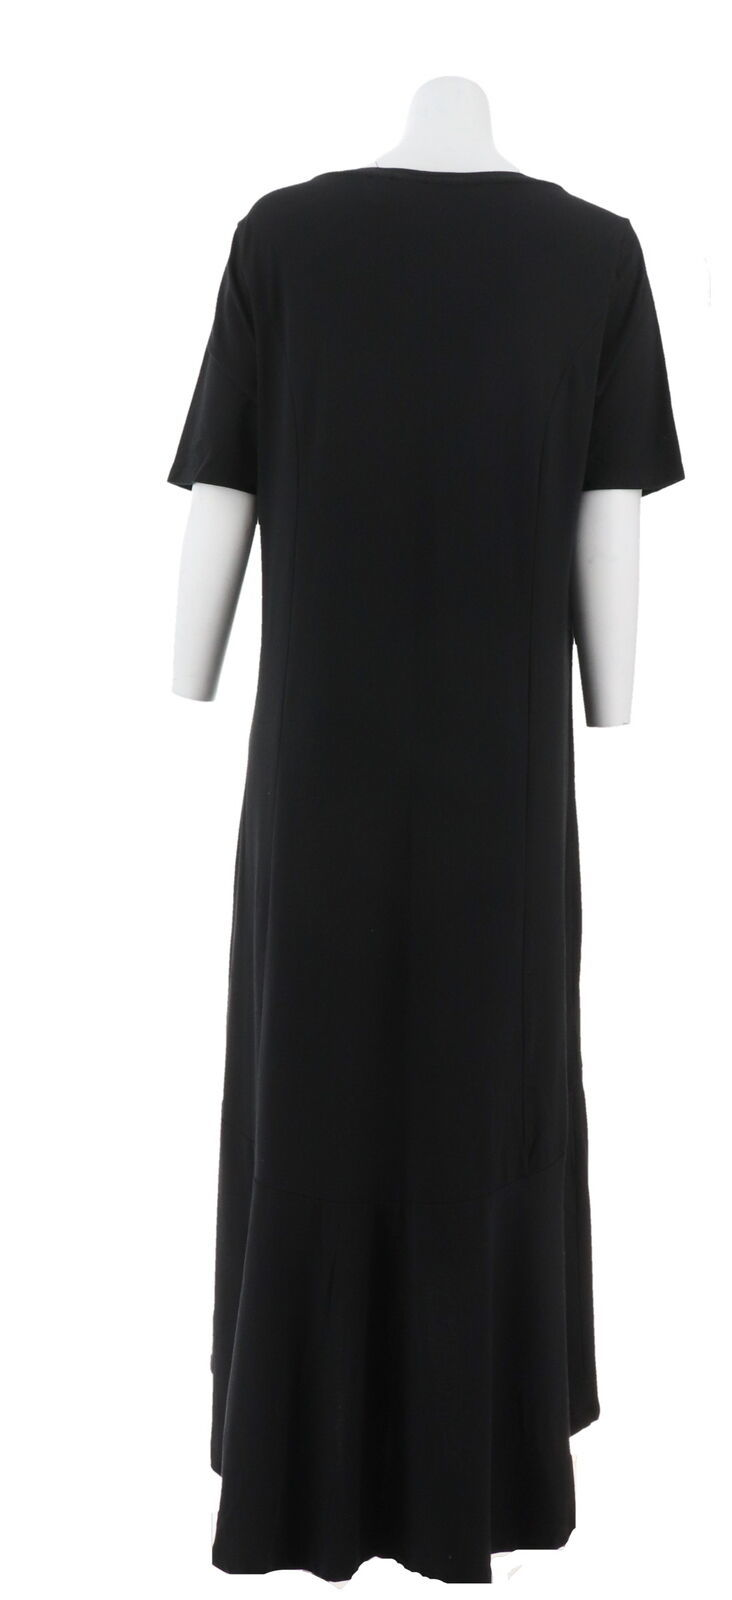 Isaac Mizrahi Elbow Slv Knit Maxi Dress Black 2X NEW A308001